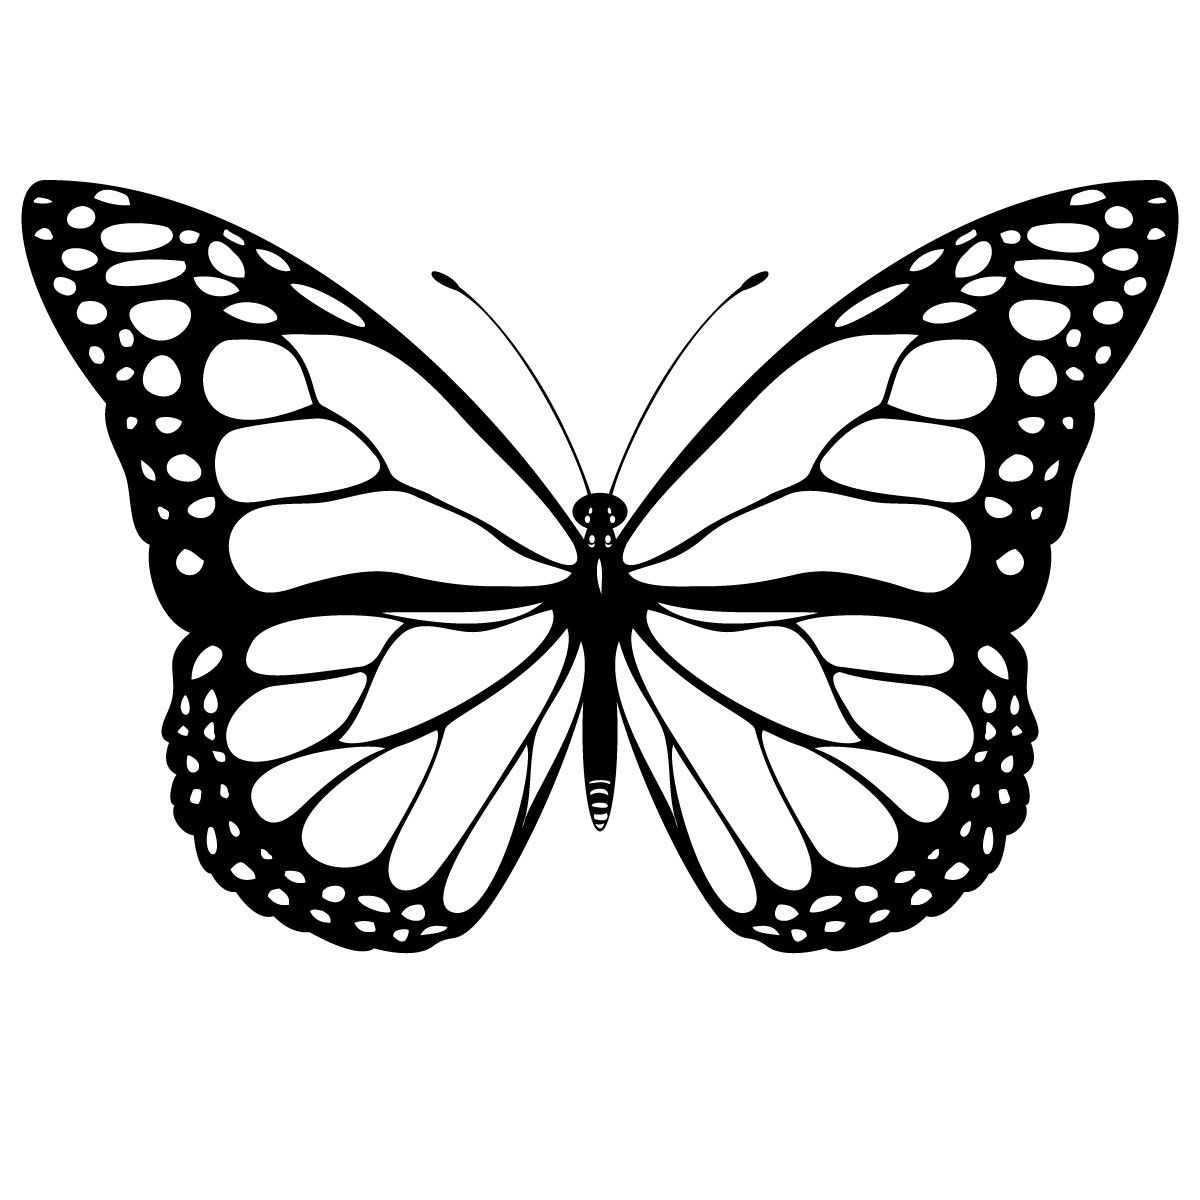 Butterfly Coloring Page Free Printable Butterfly Coloring Pages For Kids Entitlementtrap Com White Butterfly Tattoo Butterfly Tattoo Stencil Butterfly Tattoo Designs [ 1200 x 1200 Pixel ]